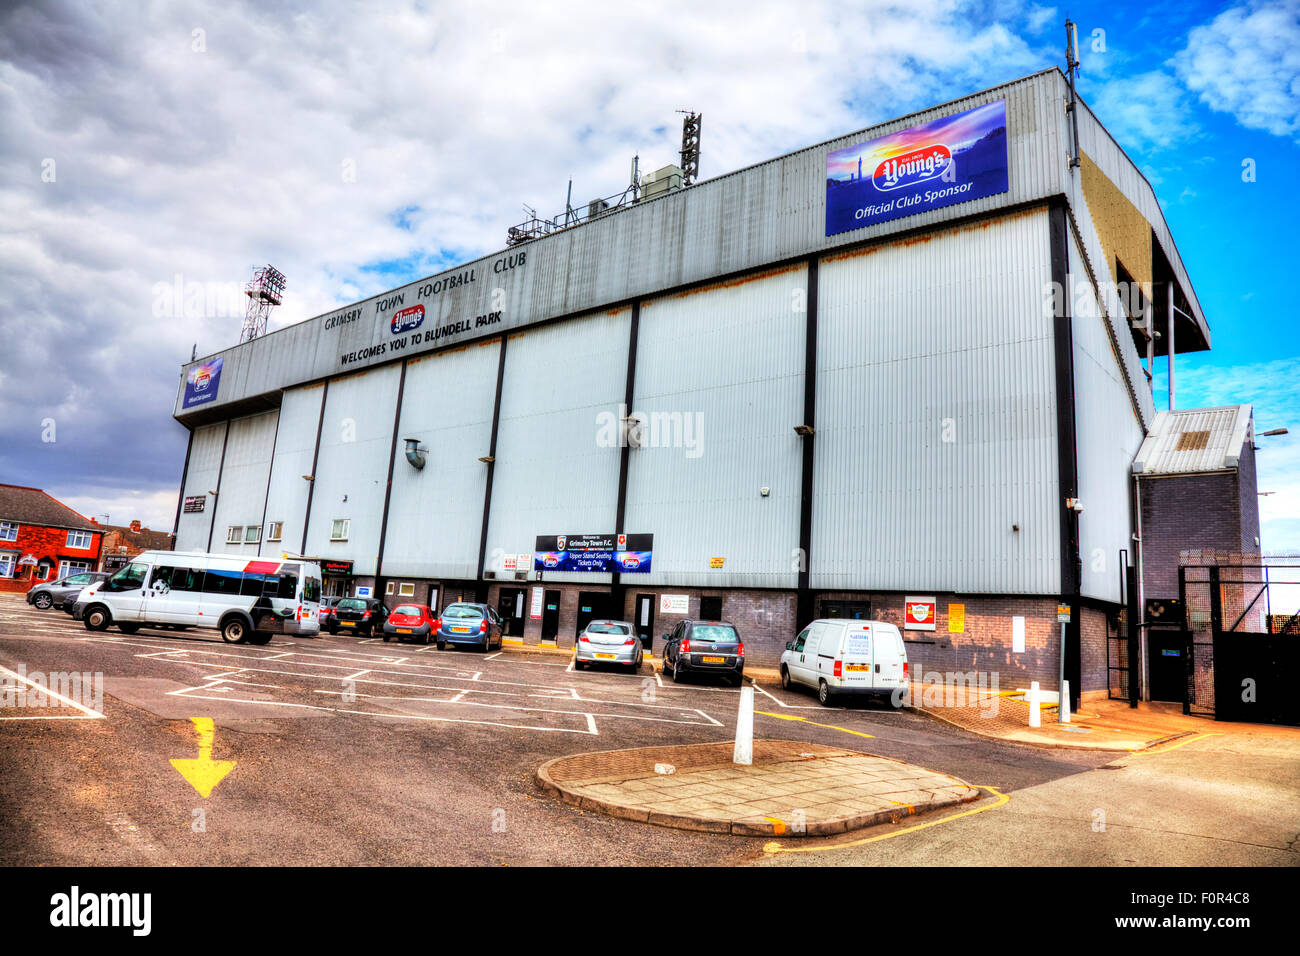 Blundell Park Home Of Grimsby Town FC Football Stadium Front Entrance Outside Facade Exterior